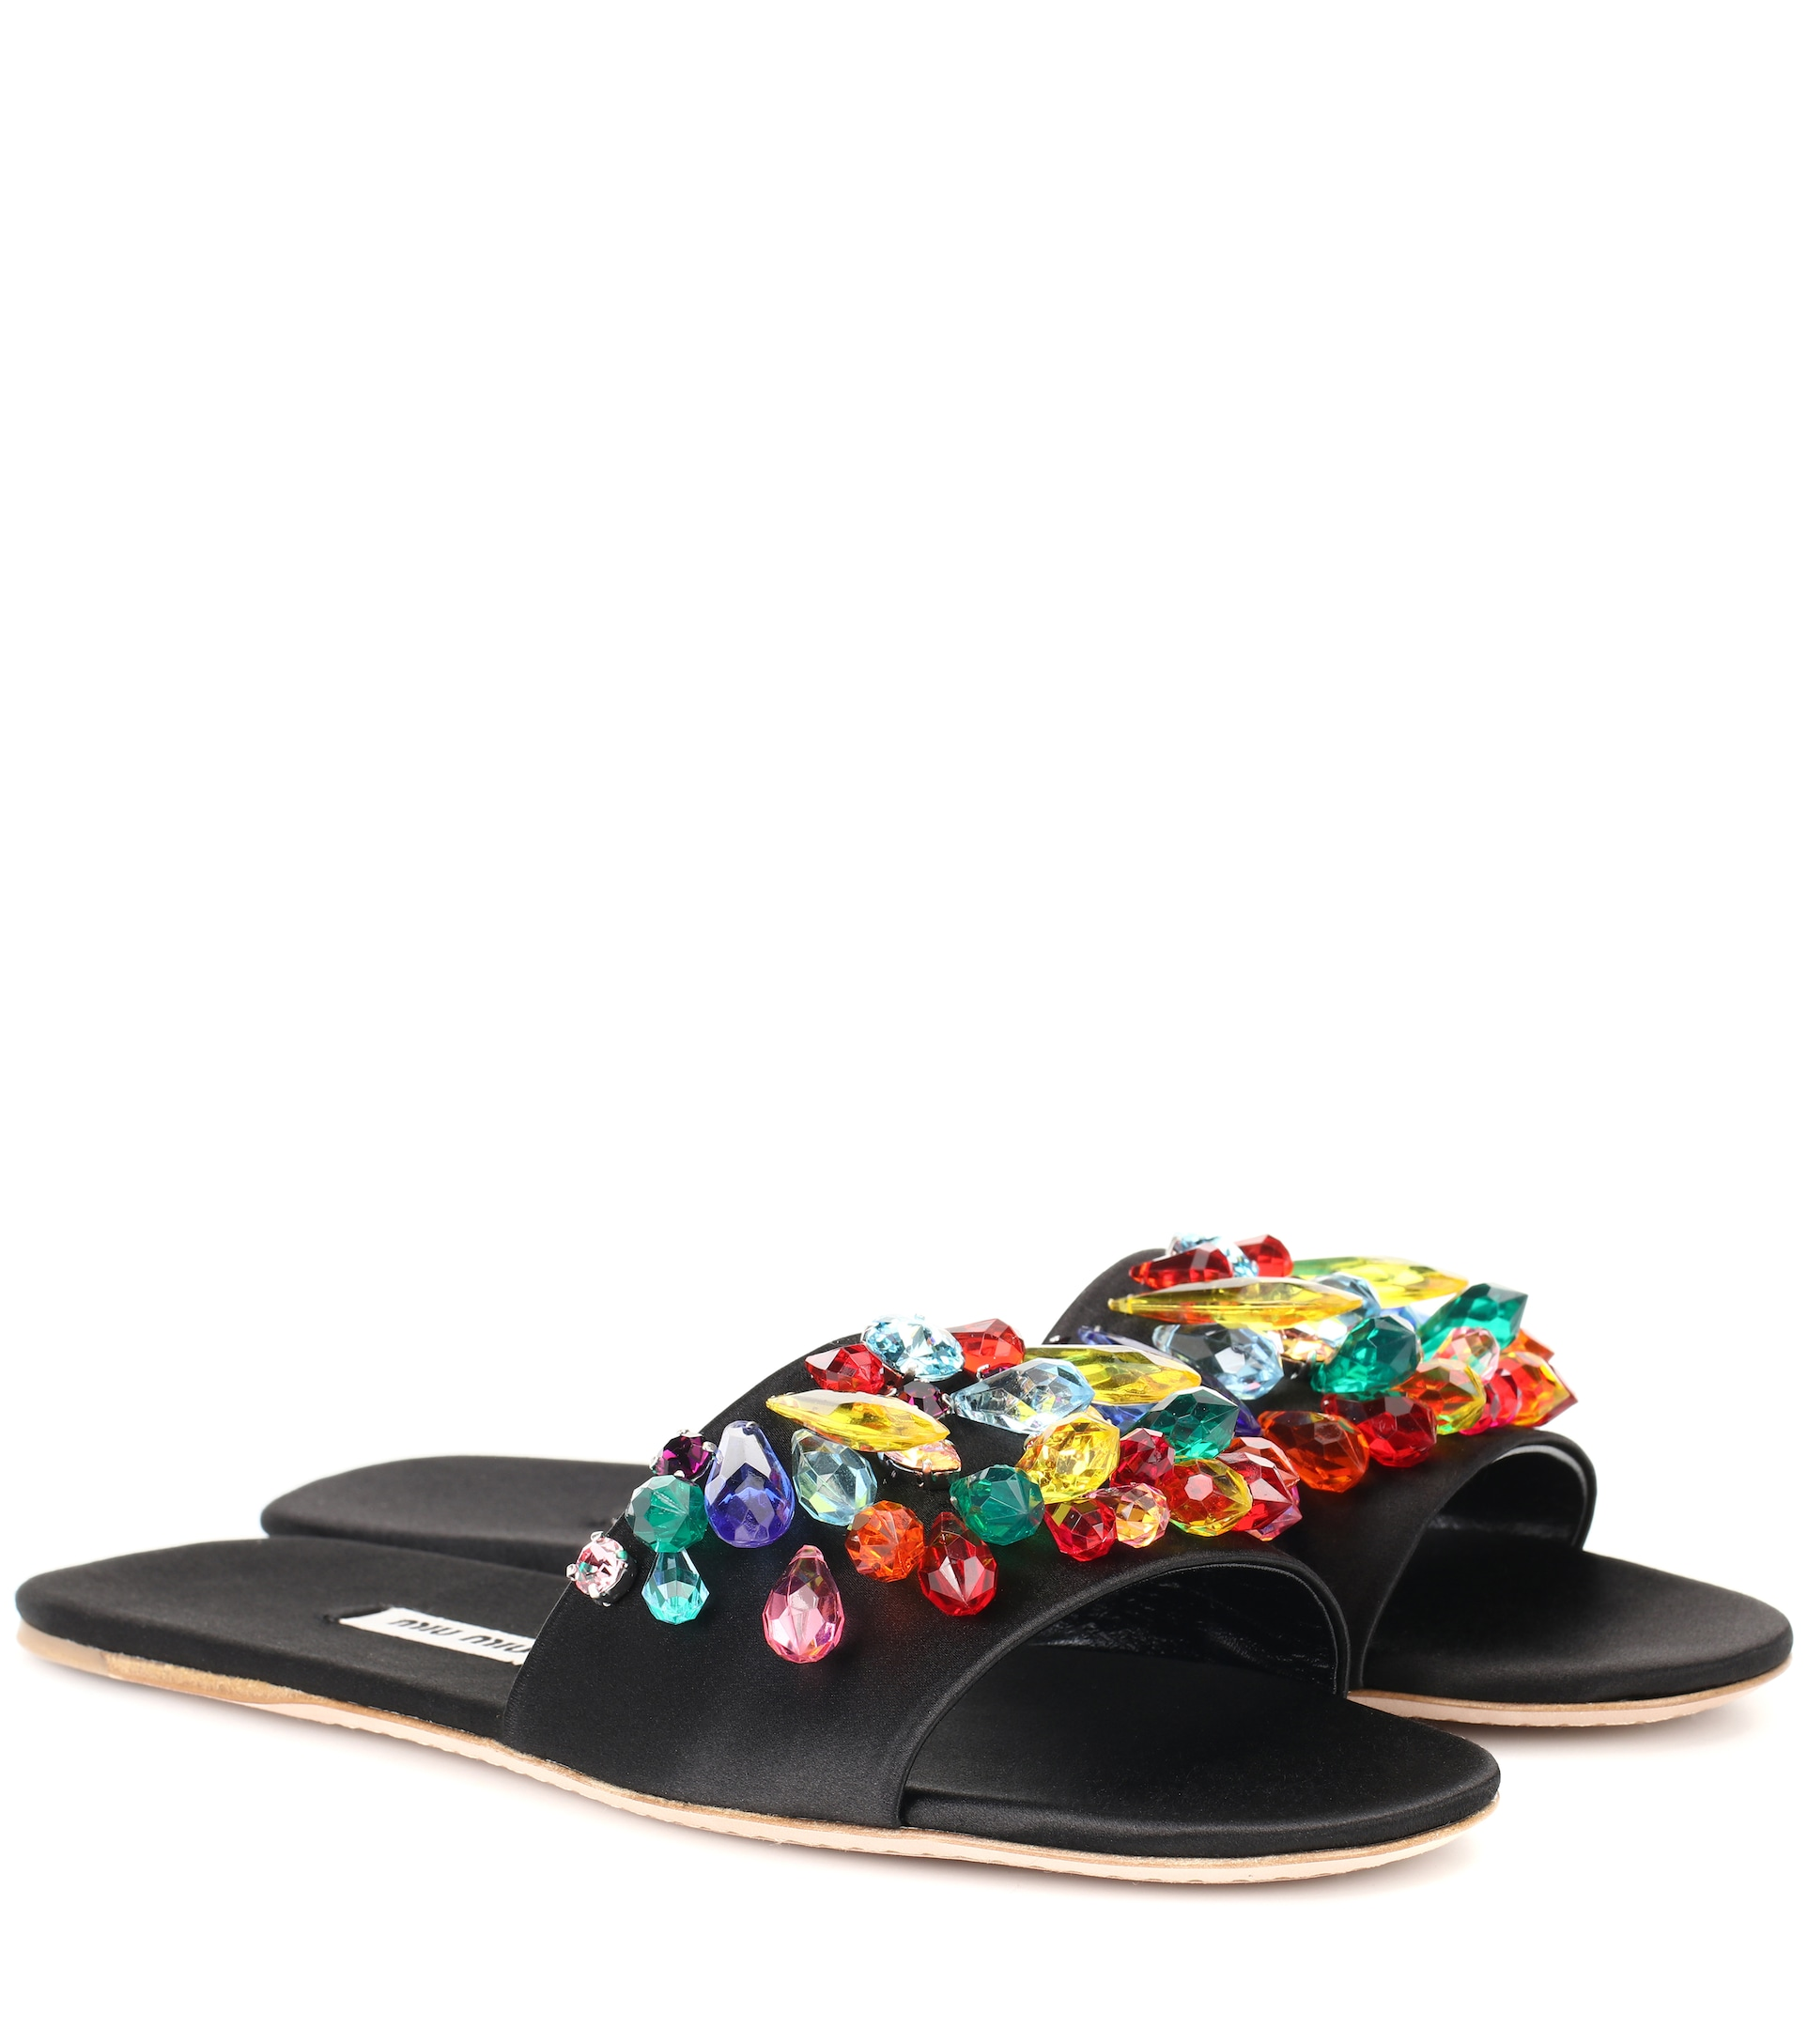 Embellished Slides by Miu Miu, available on mytheresa.com for $645 Kendall Jenner Shoes Exact Product